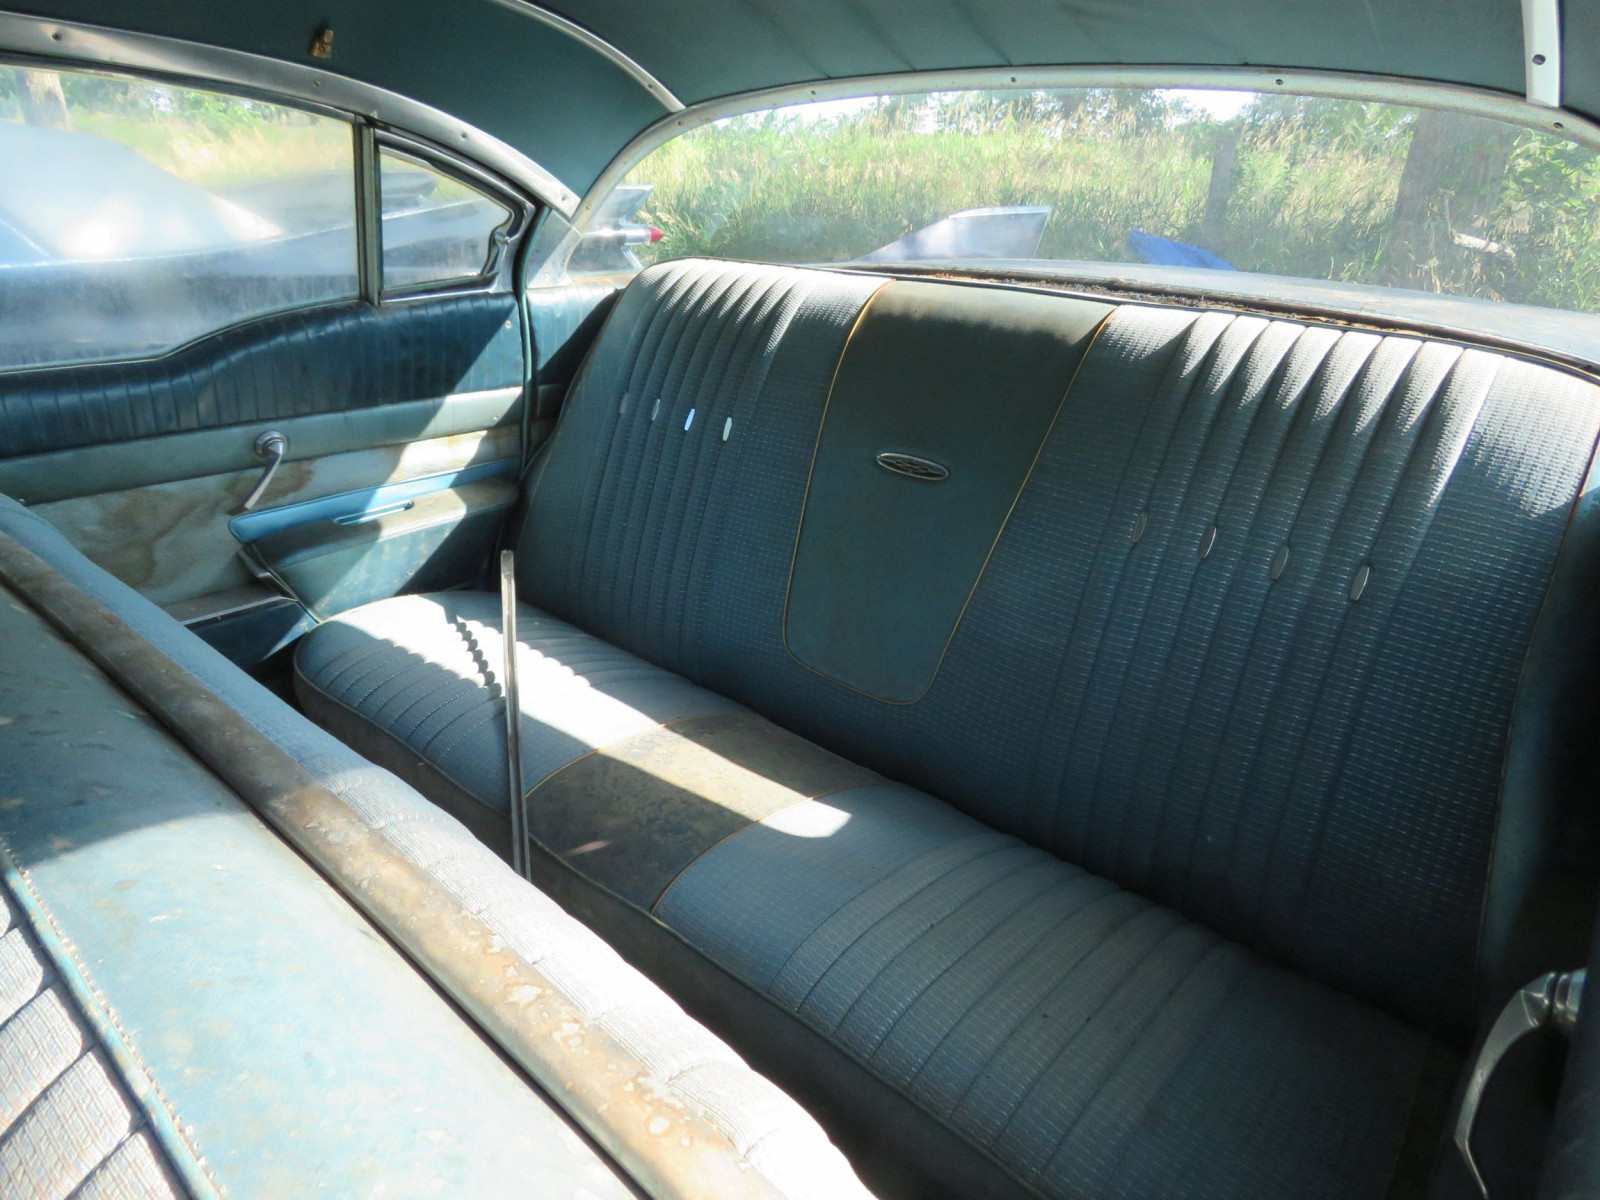 1958 Cadillac Fleetwood 60 Series 4dr HT - Image 14